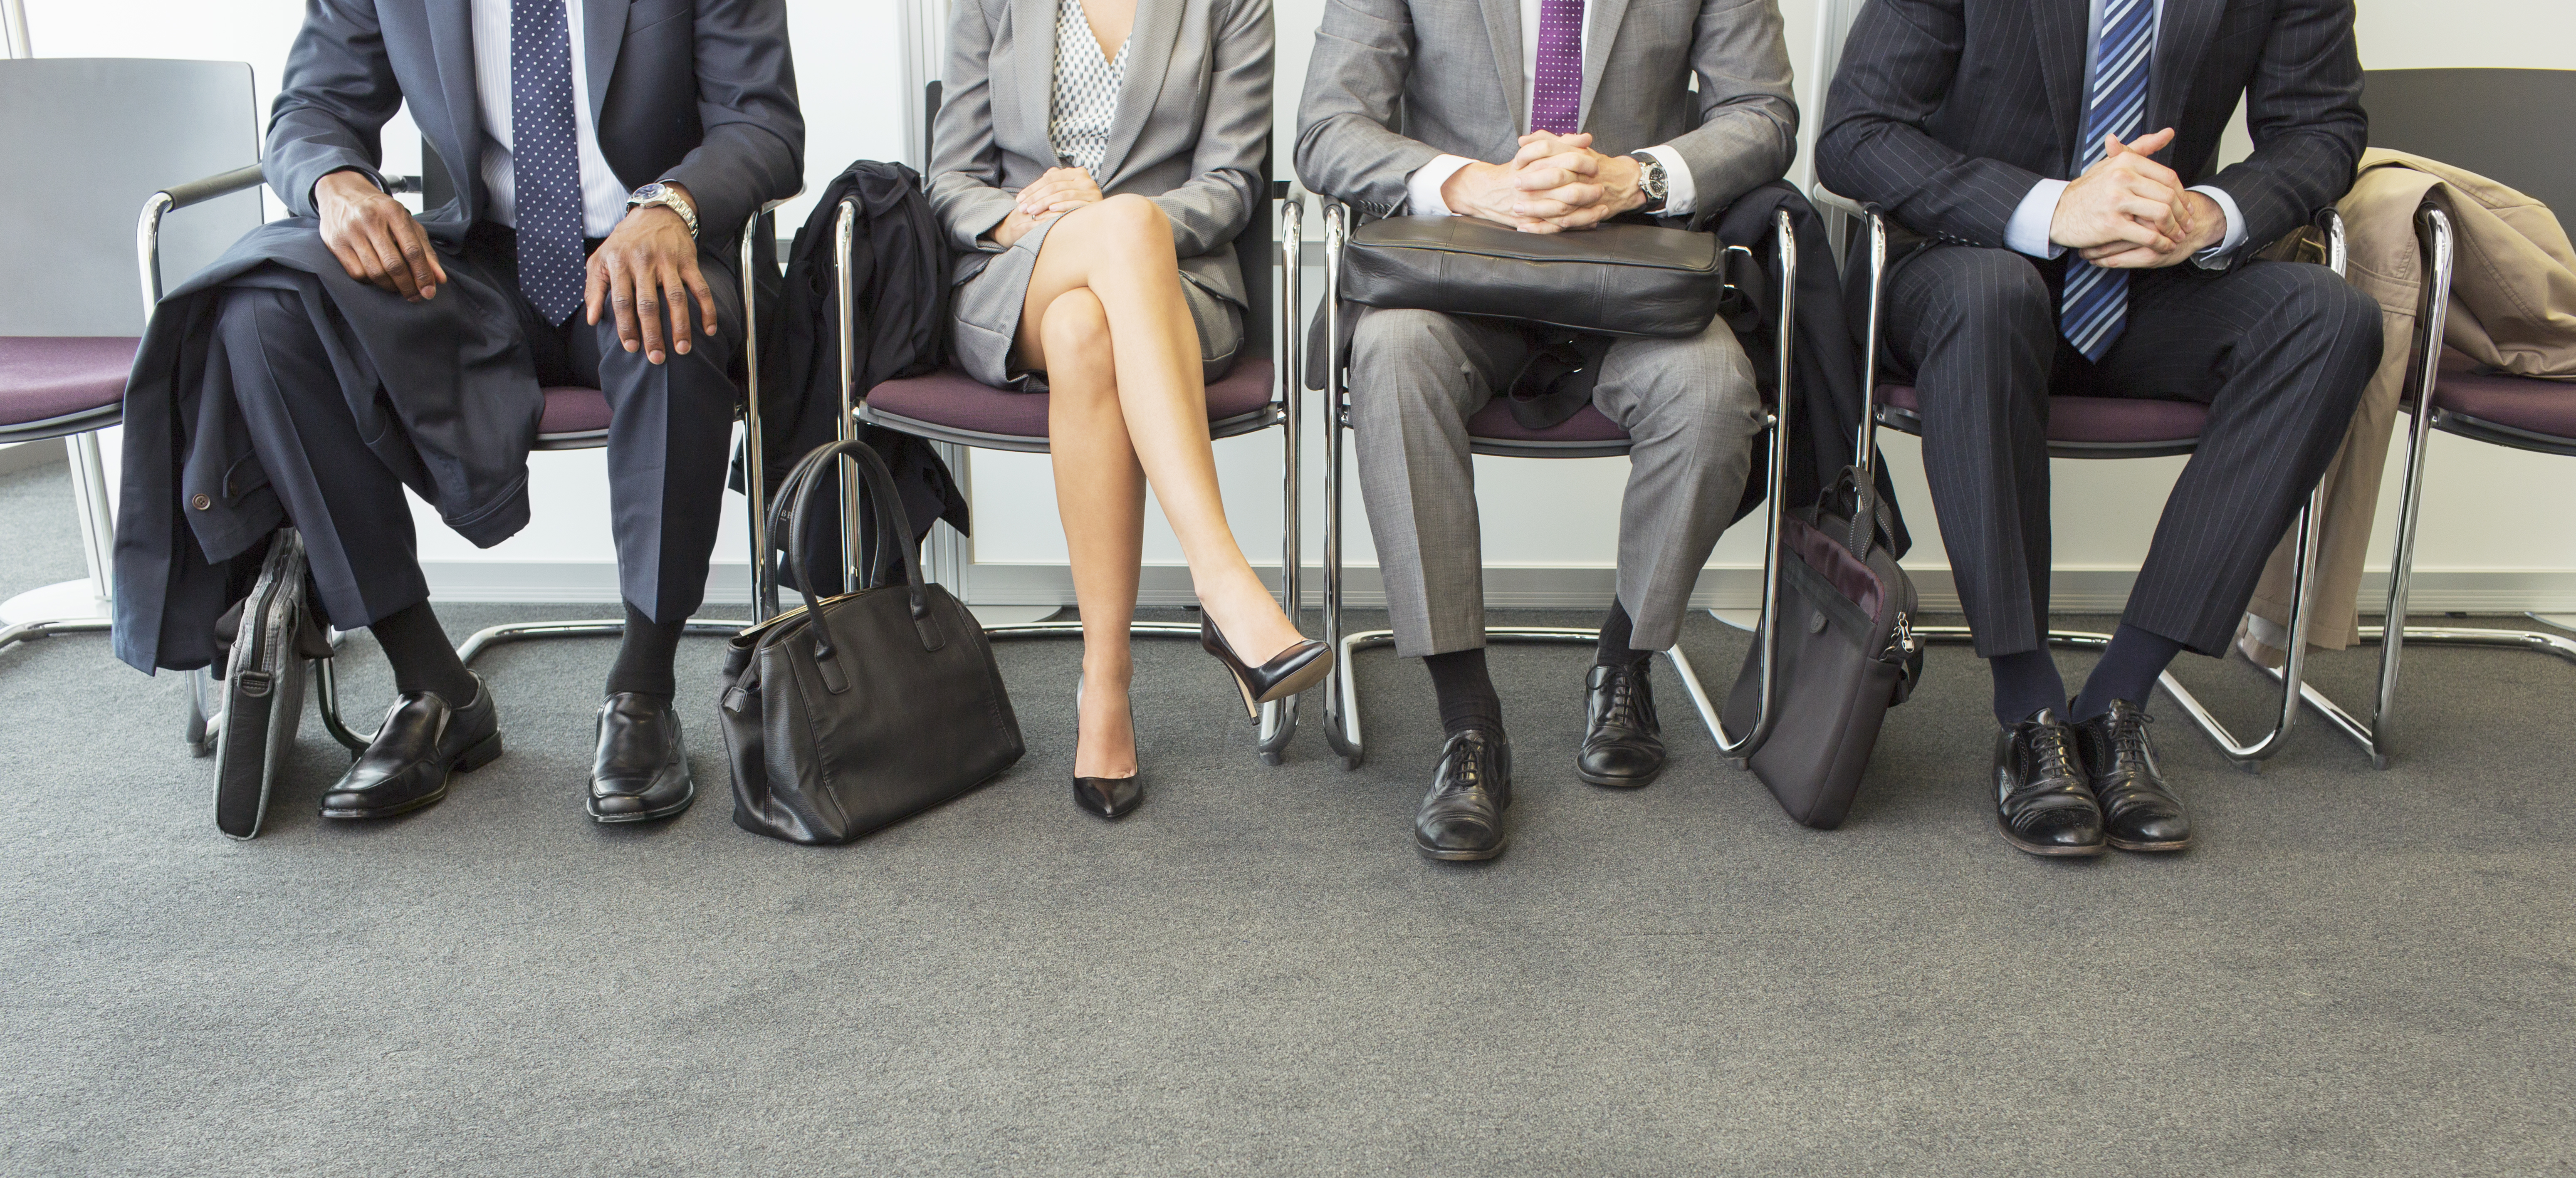 Business people sitting in waiting area